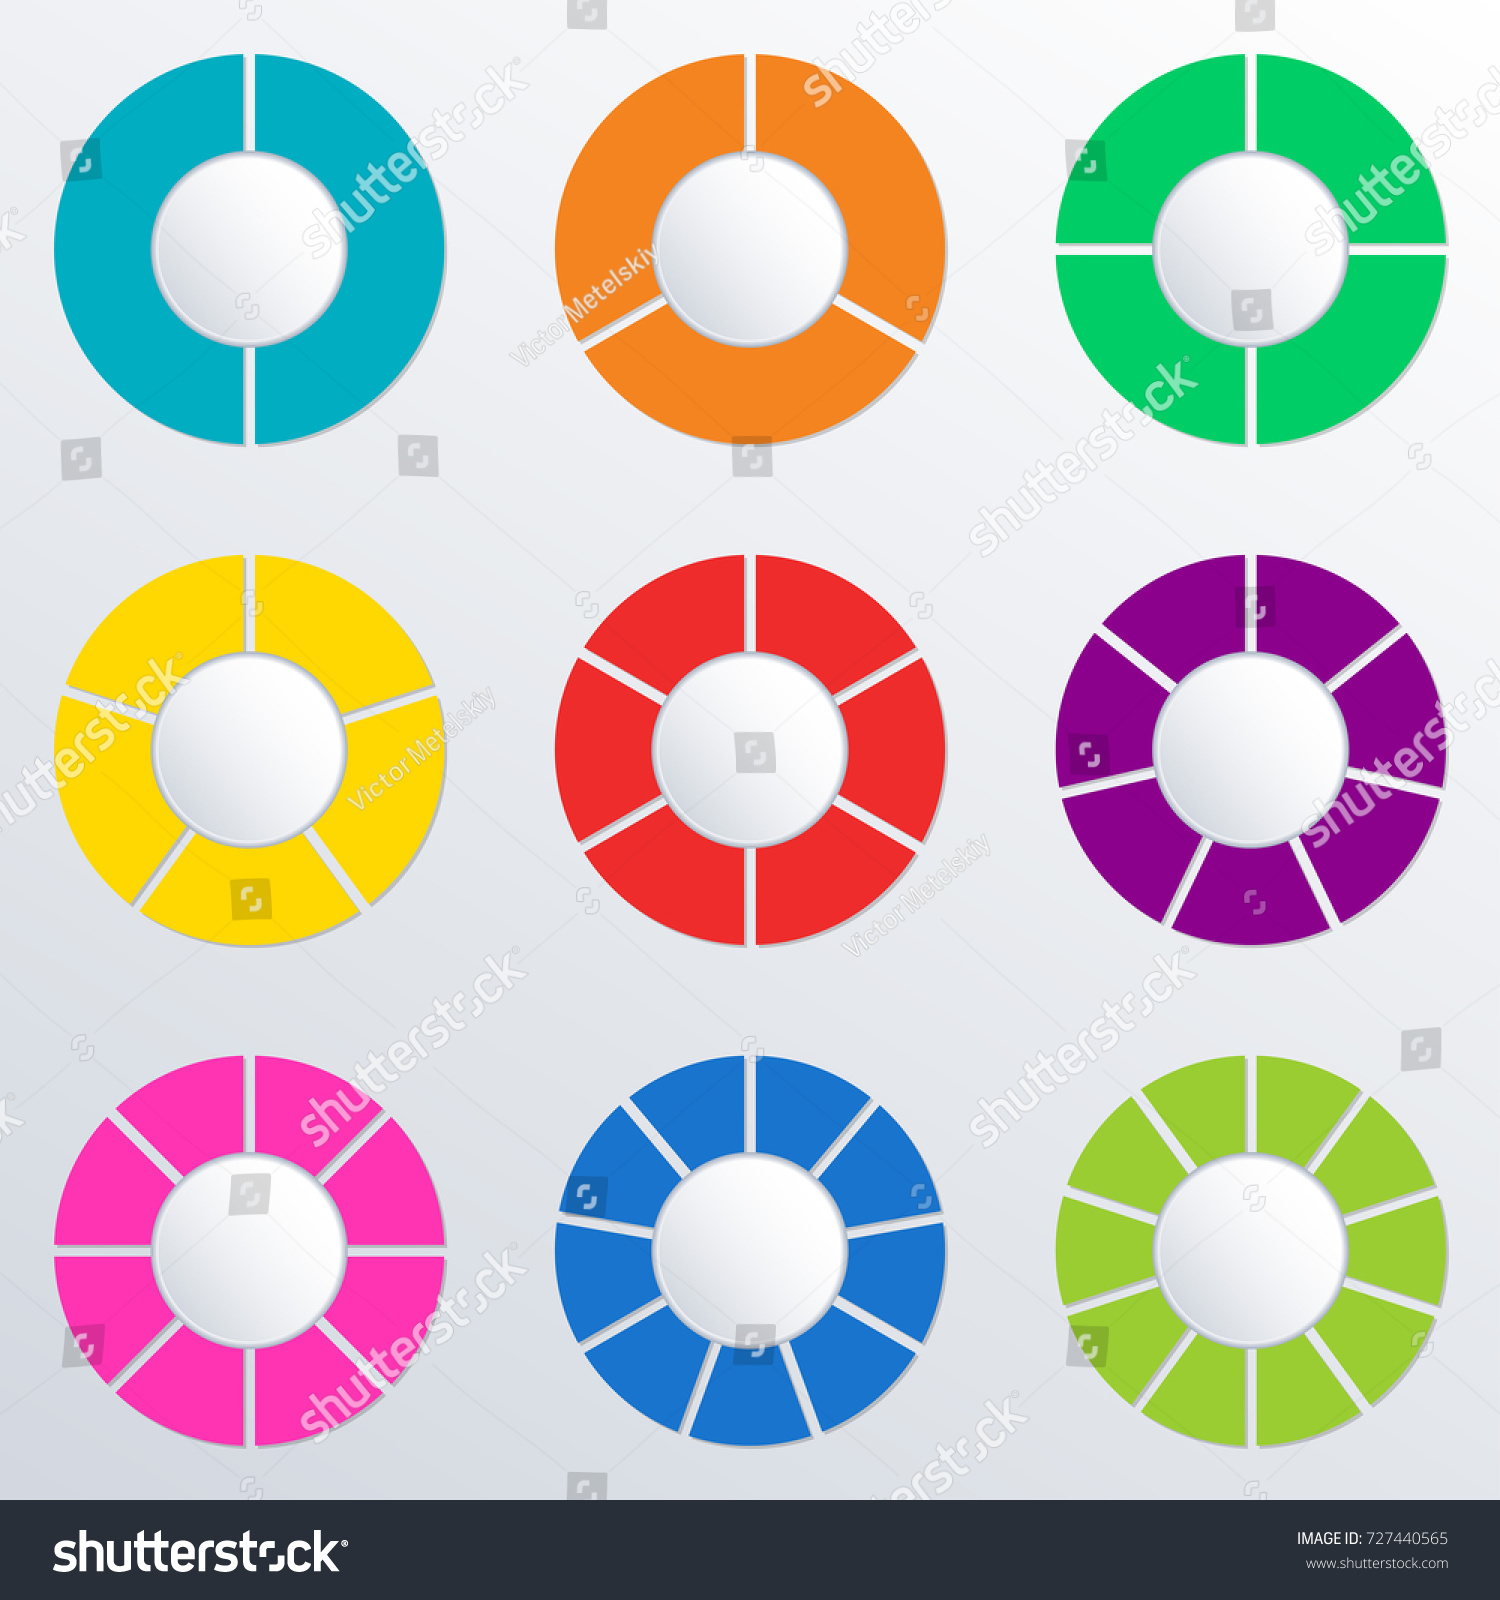 pie chart set 2345678910 parts sections stock vector (royalty free